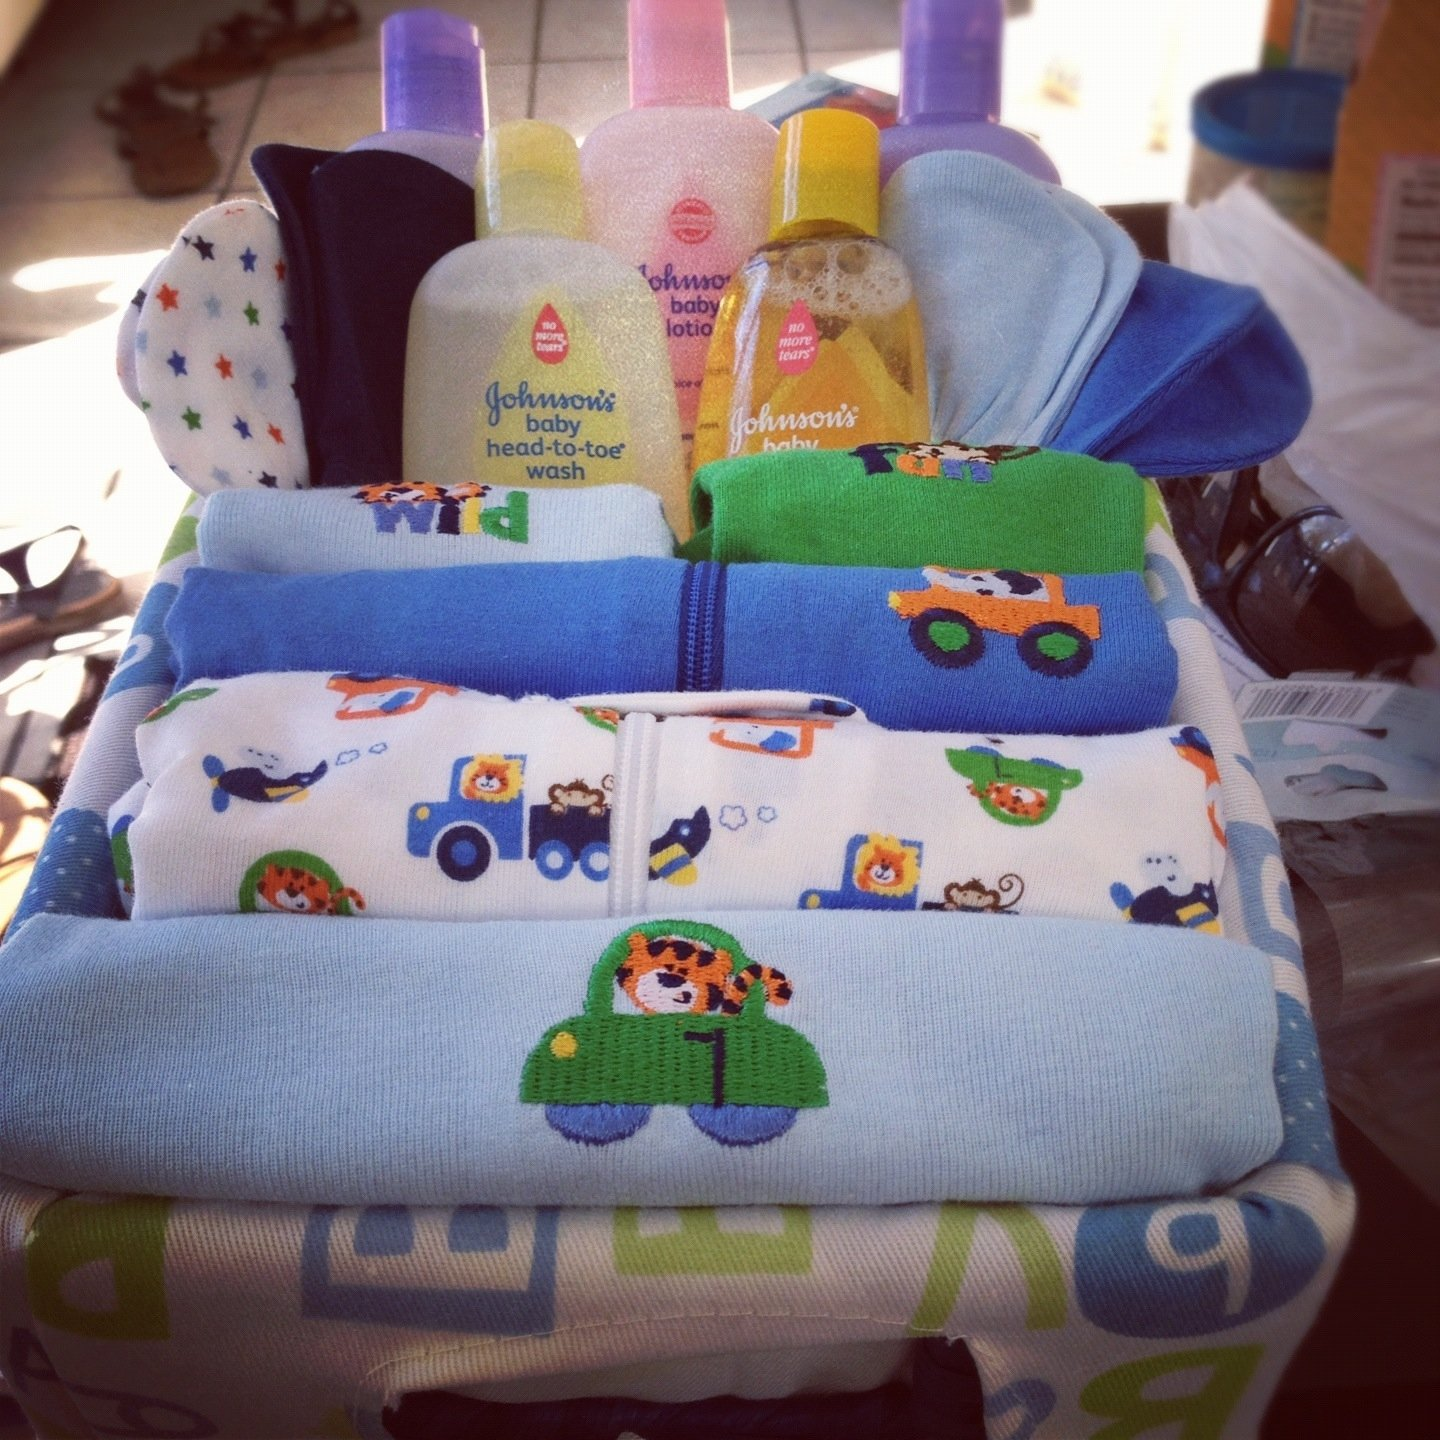 10 Ideal Cute Ideas For Baby Shower Gifts babyer gifts for twins cute gift ideas boy and girl diy top 2020